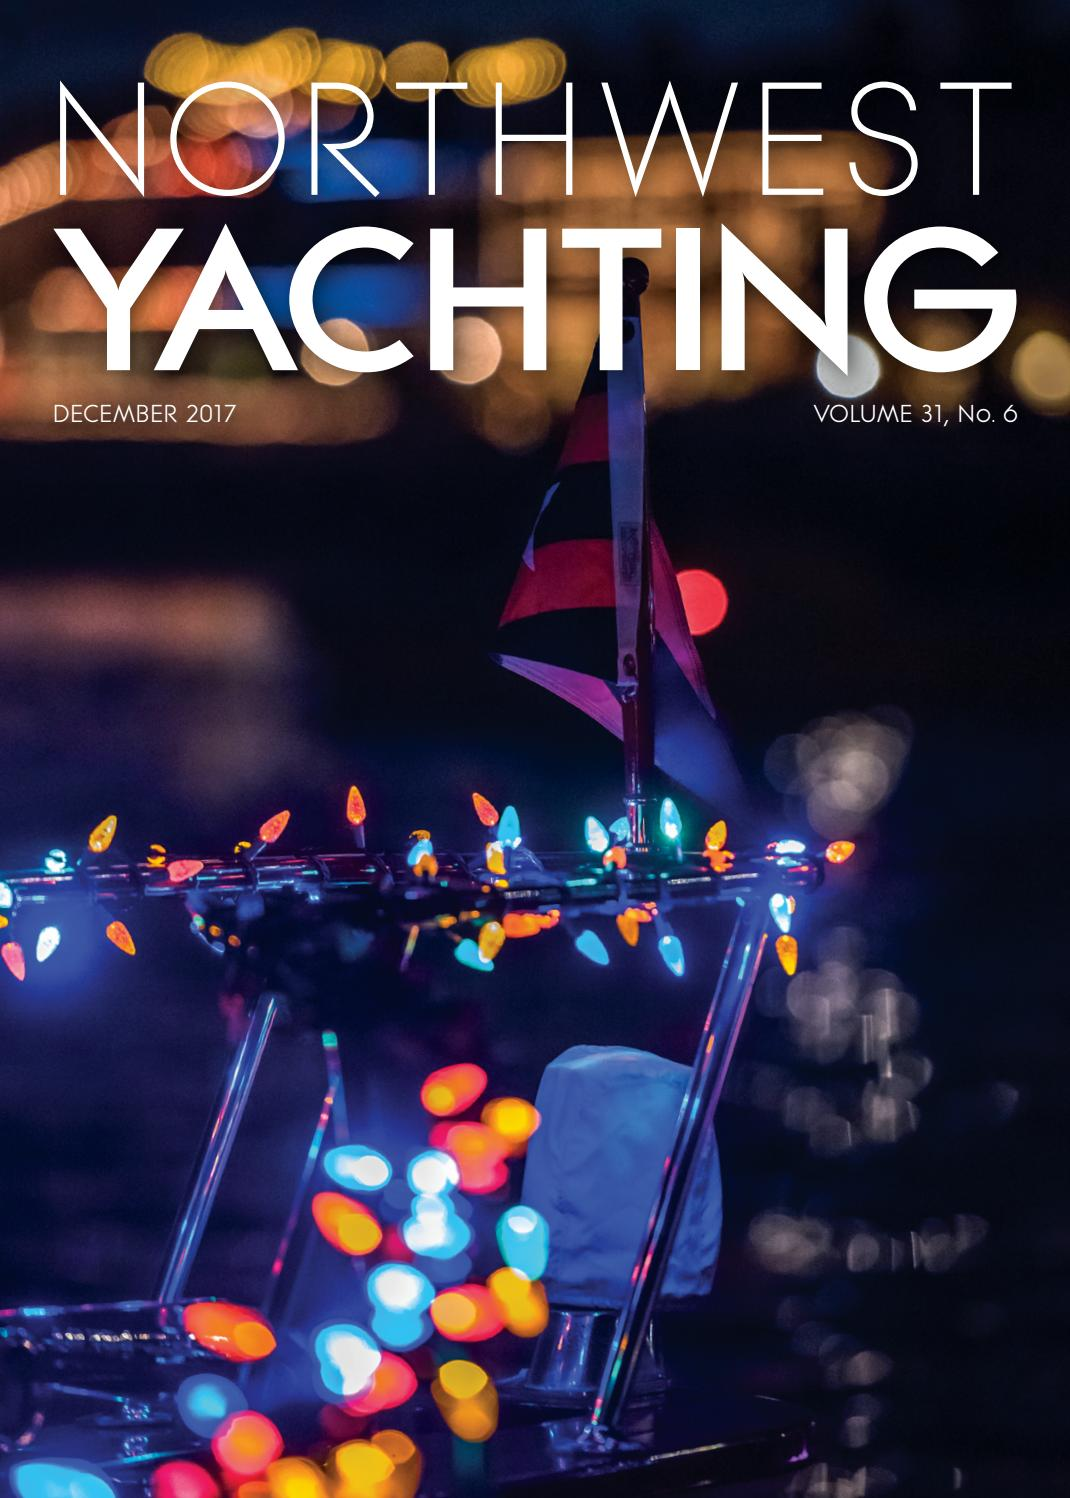 Northwest Yachting April 2017 By Issuu Electronicsr 61647622 3way Norcold Refrigerator Circuit Board